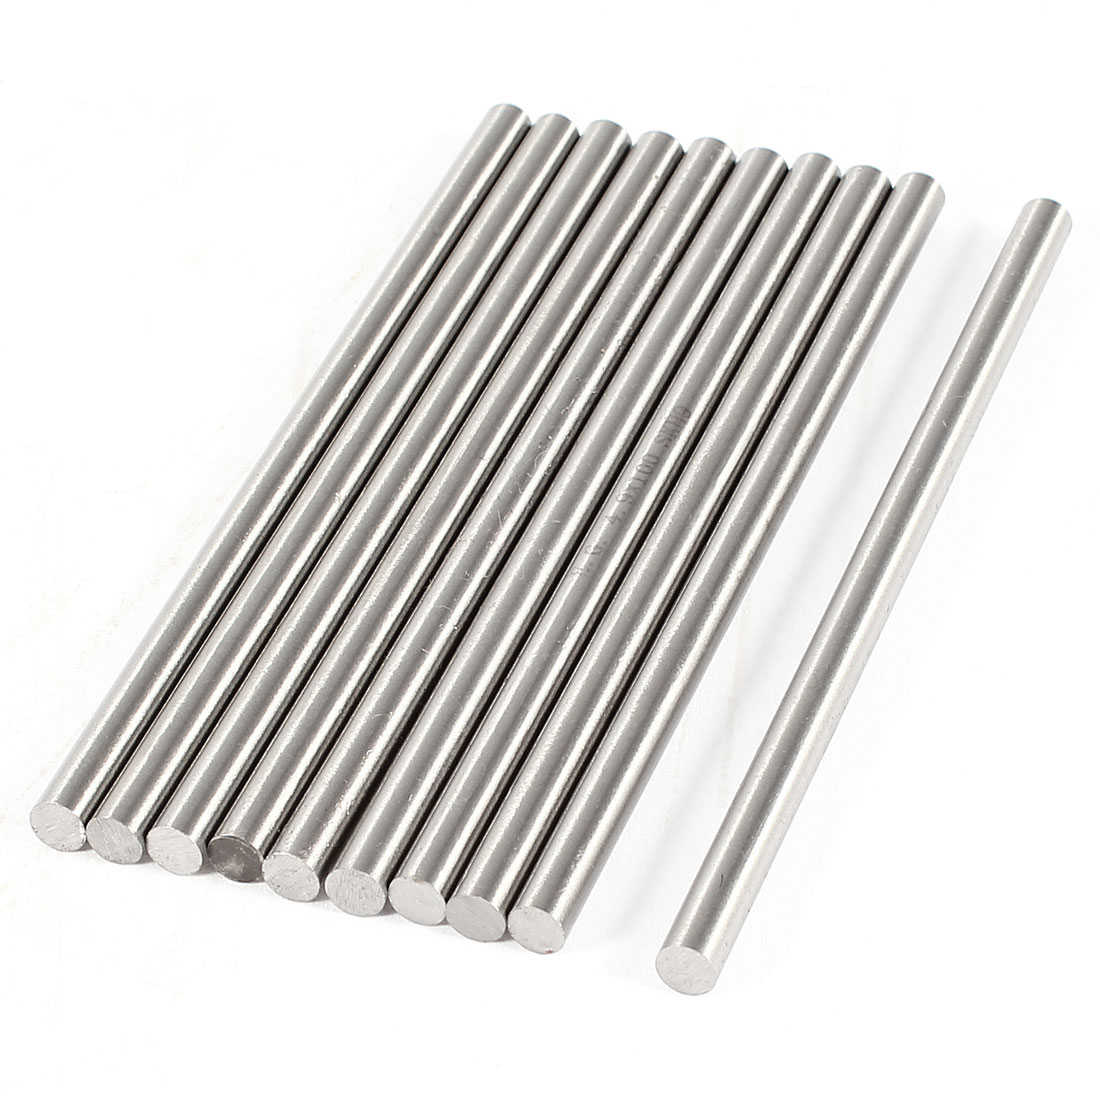 Unique Bargains 10 Pcs 4.9mm x 100mm HSS High Speed Steel Turning Bars for CNC Lathe